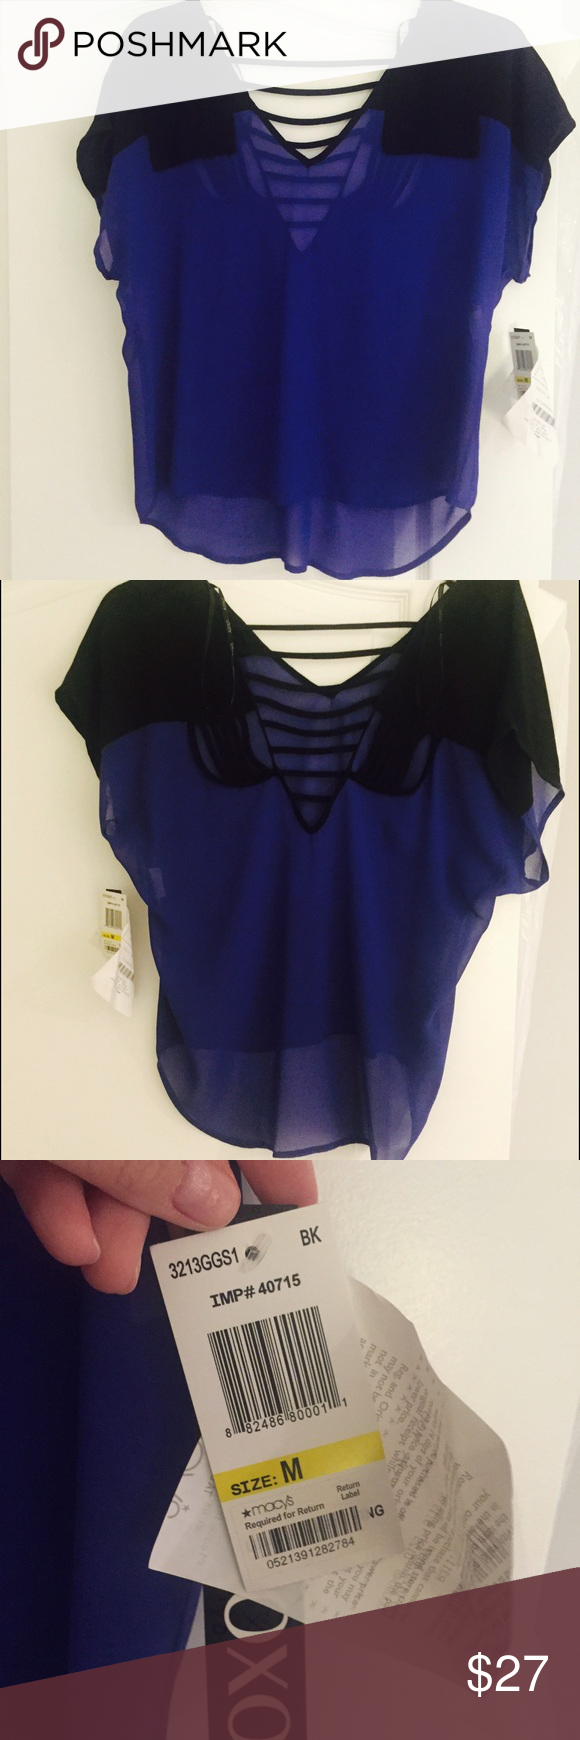 Brand new sheer blue and black blouse Brand new with tags. Never worn. Sheer blouse. Blue and black. Open back detail. Macy's XOXO brand. Smoke and pet free home. XOXO Tops Blouses